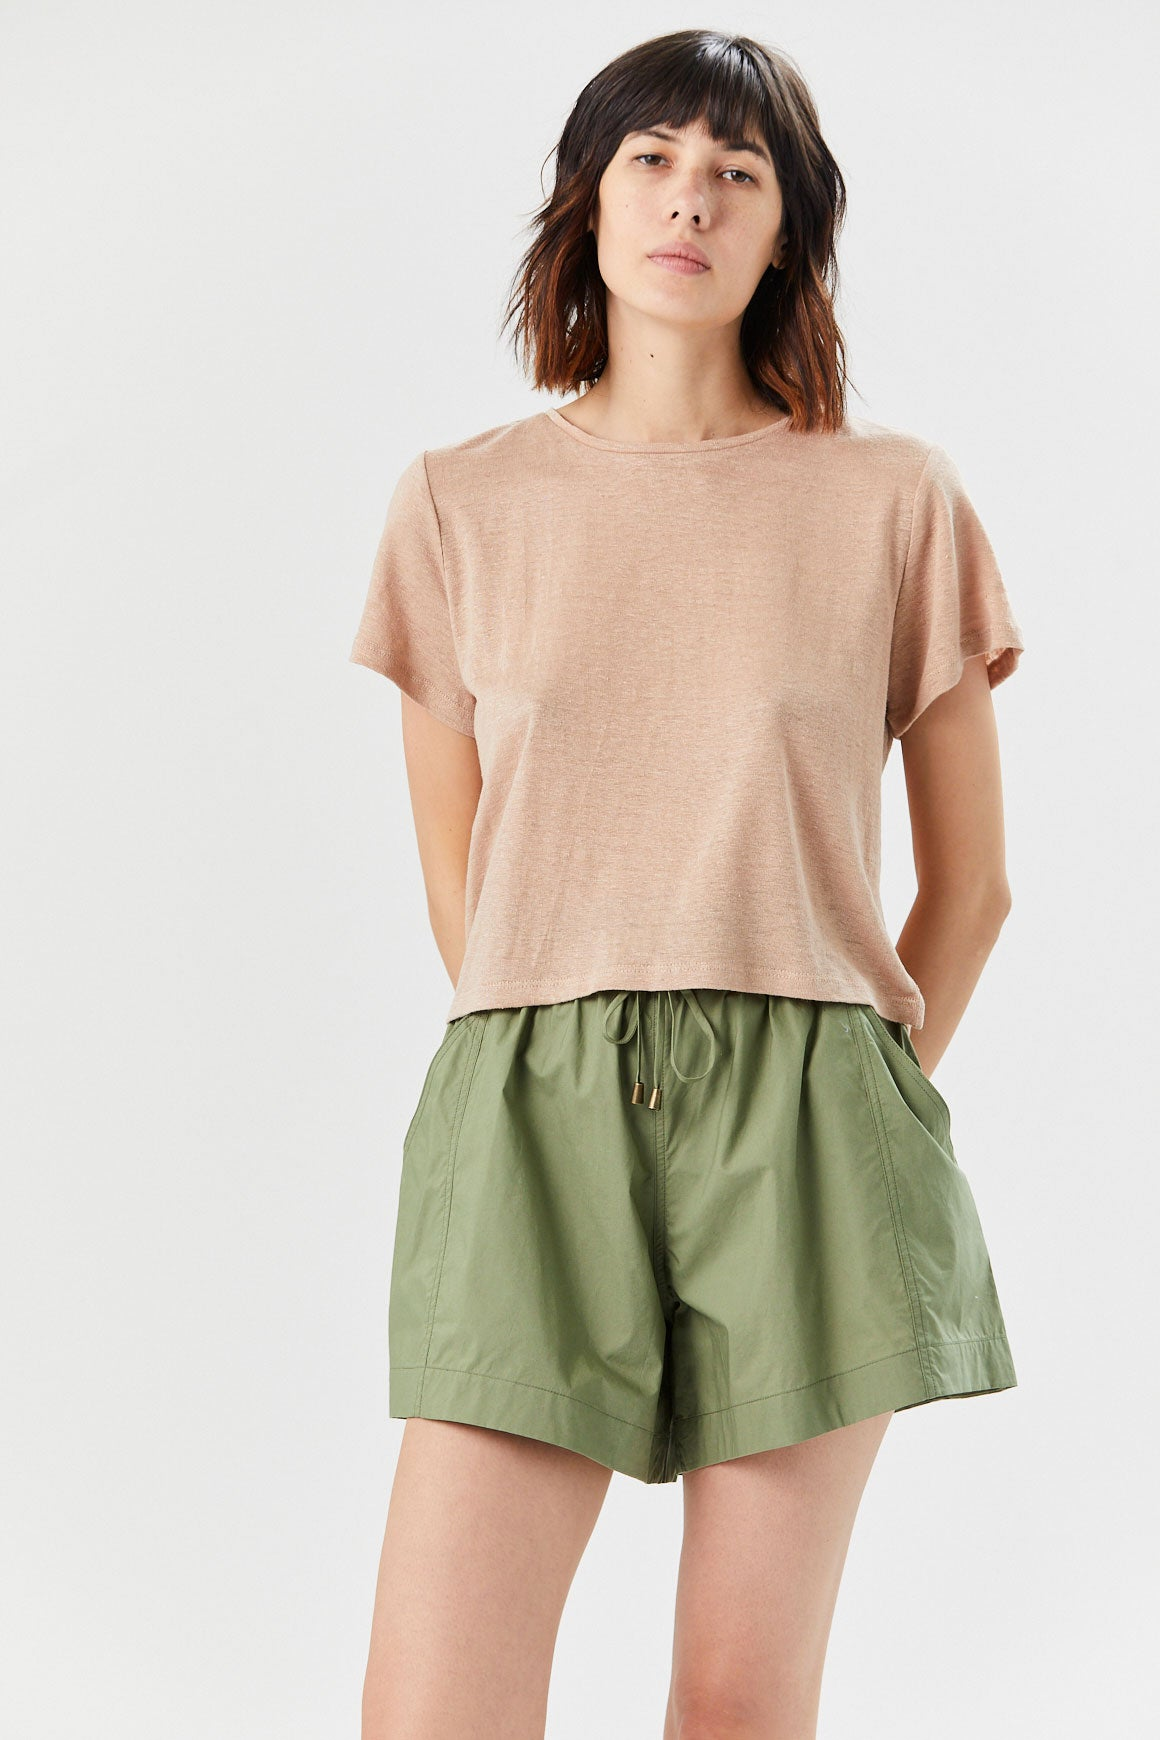 Apiece Apart - Andi Cropped Tee, Sand